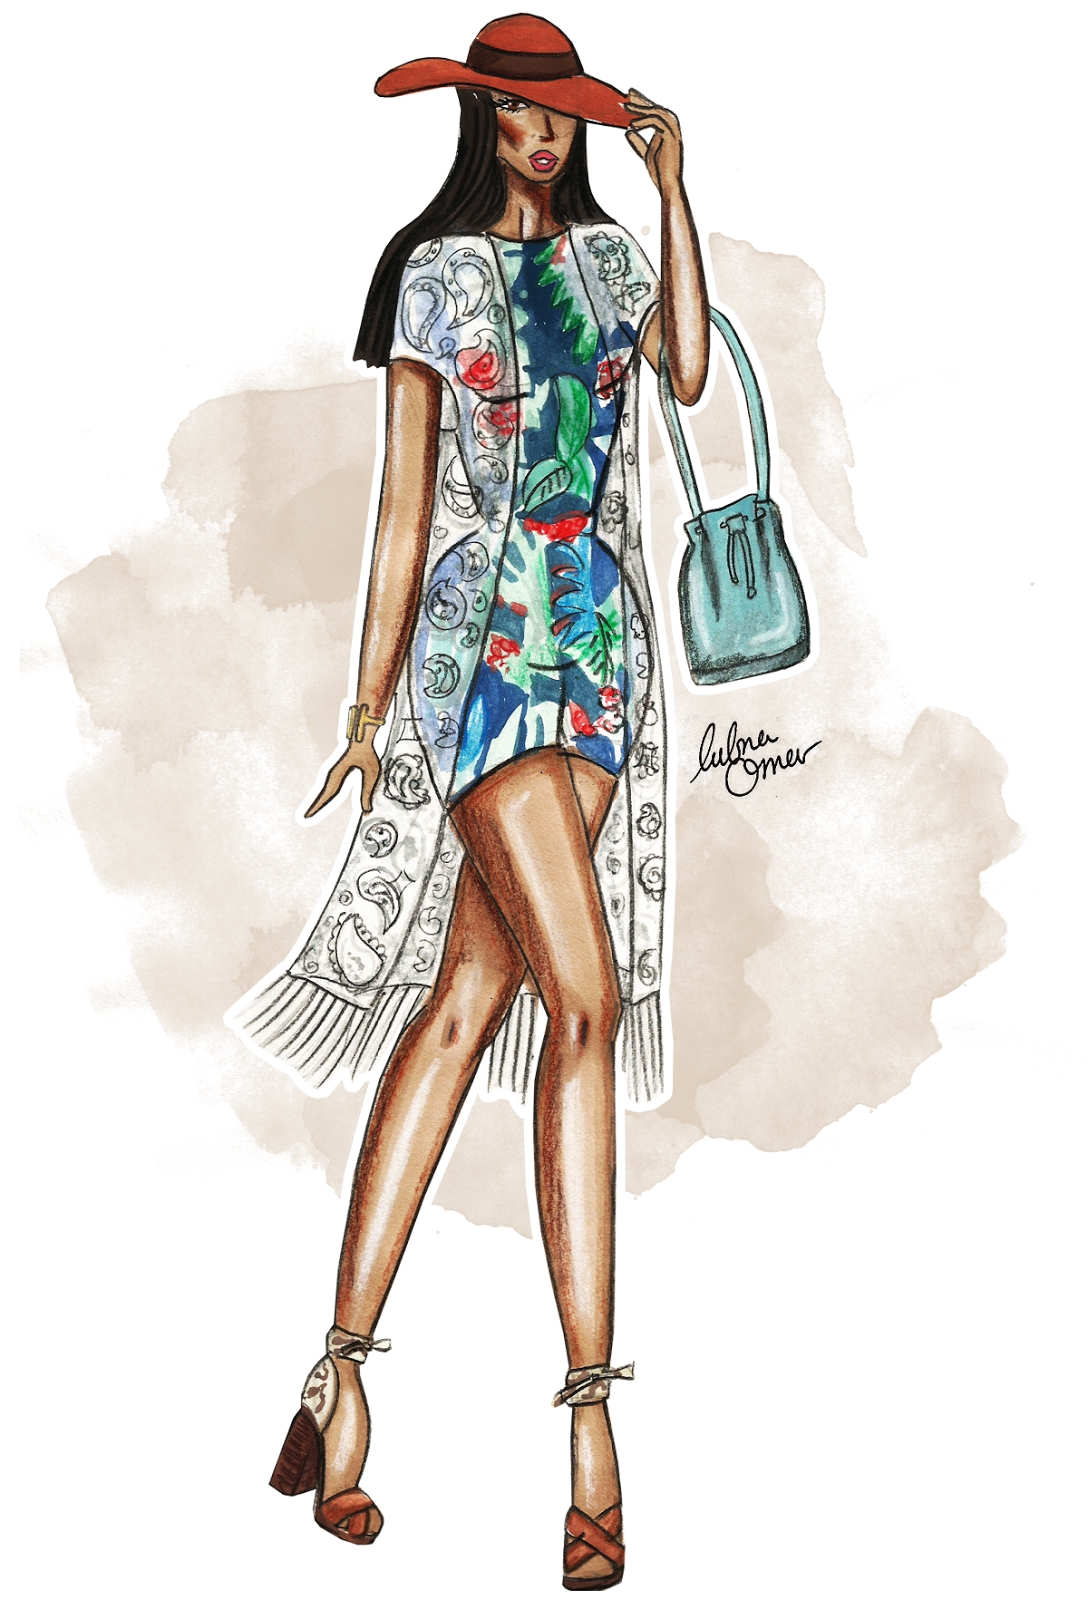 tropical print outfit illustration by lubna omar